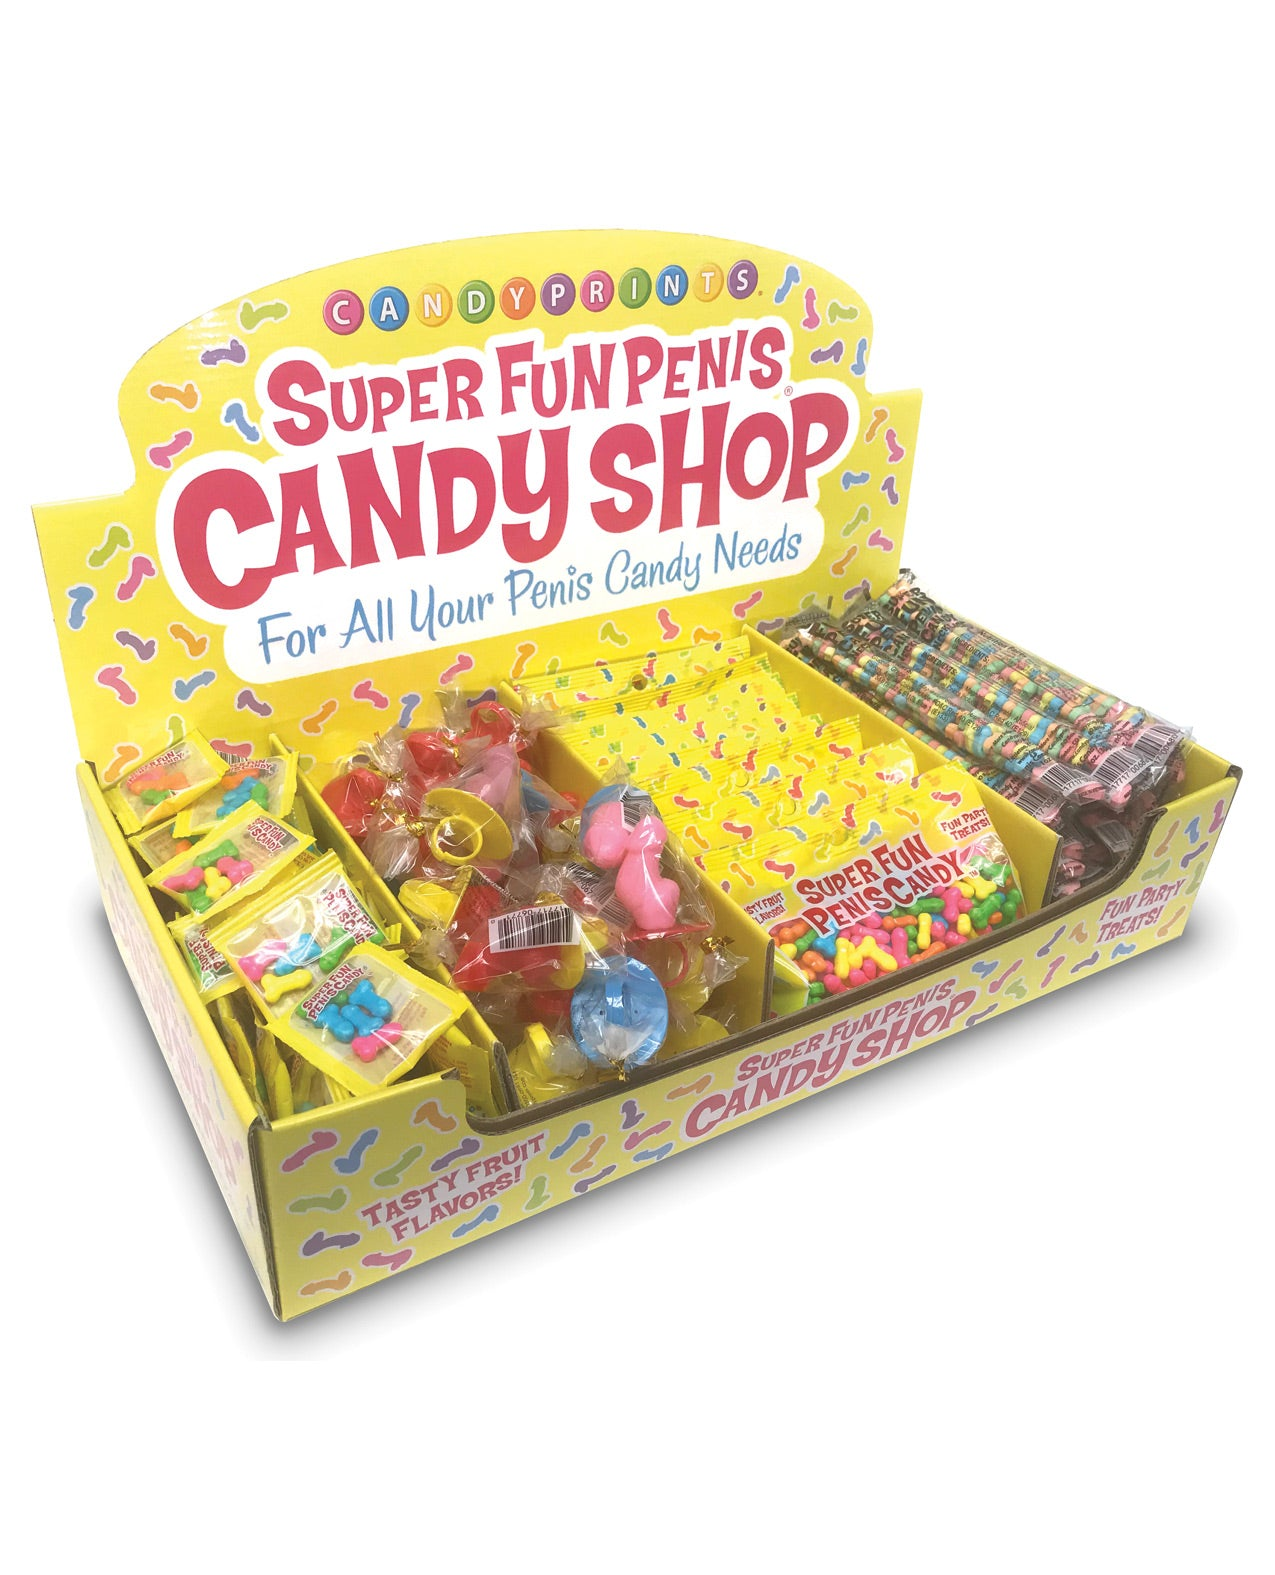 Super Fun Penis Candy Shop